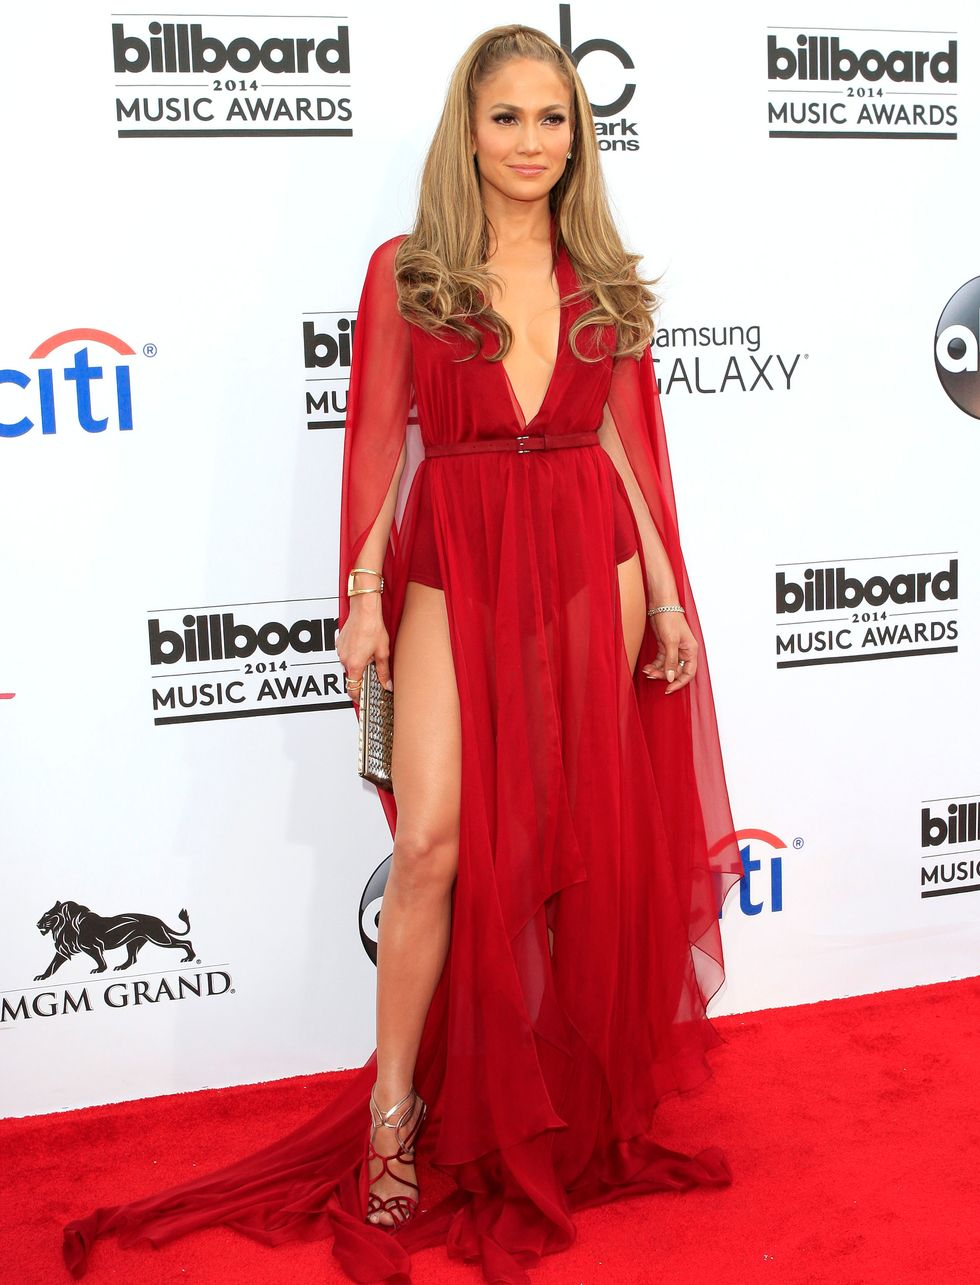 Rating the Celebrity Fashion at the Billboard Awards